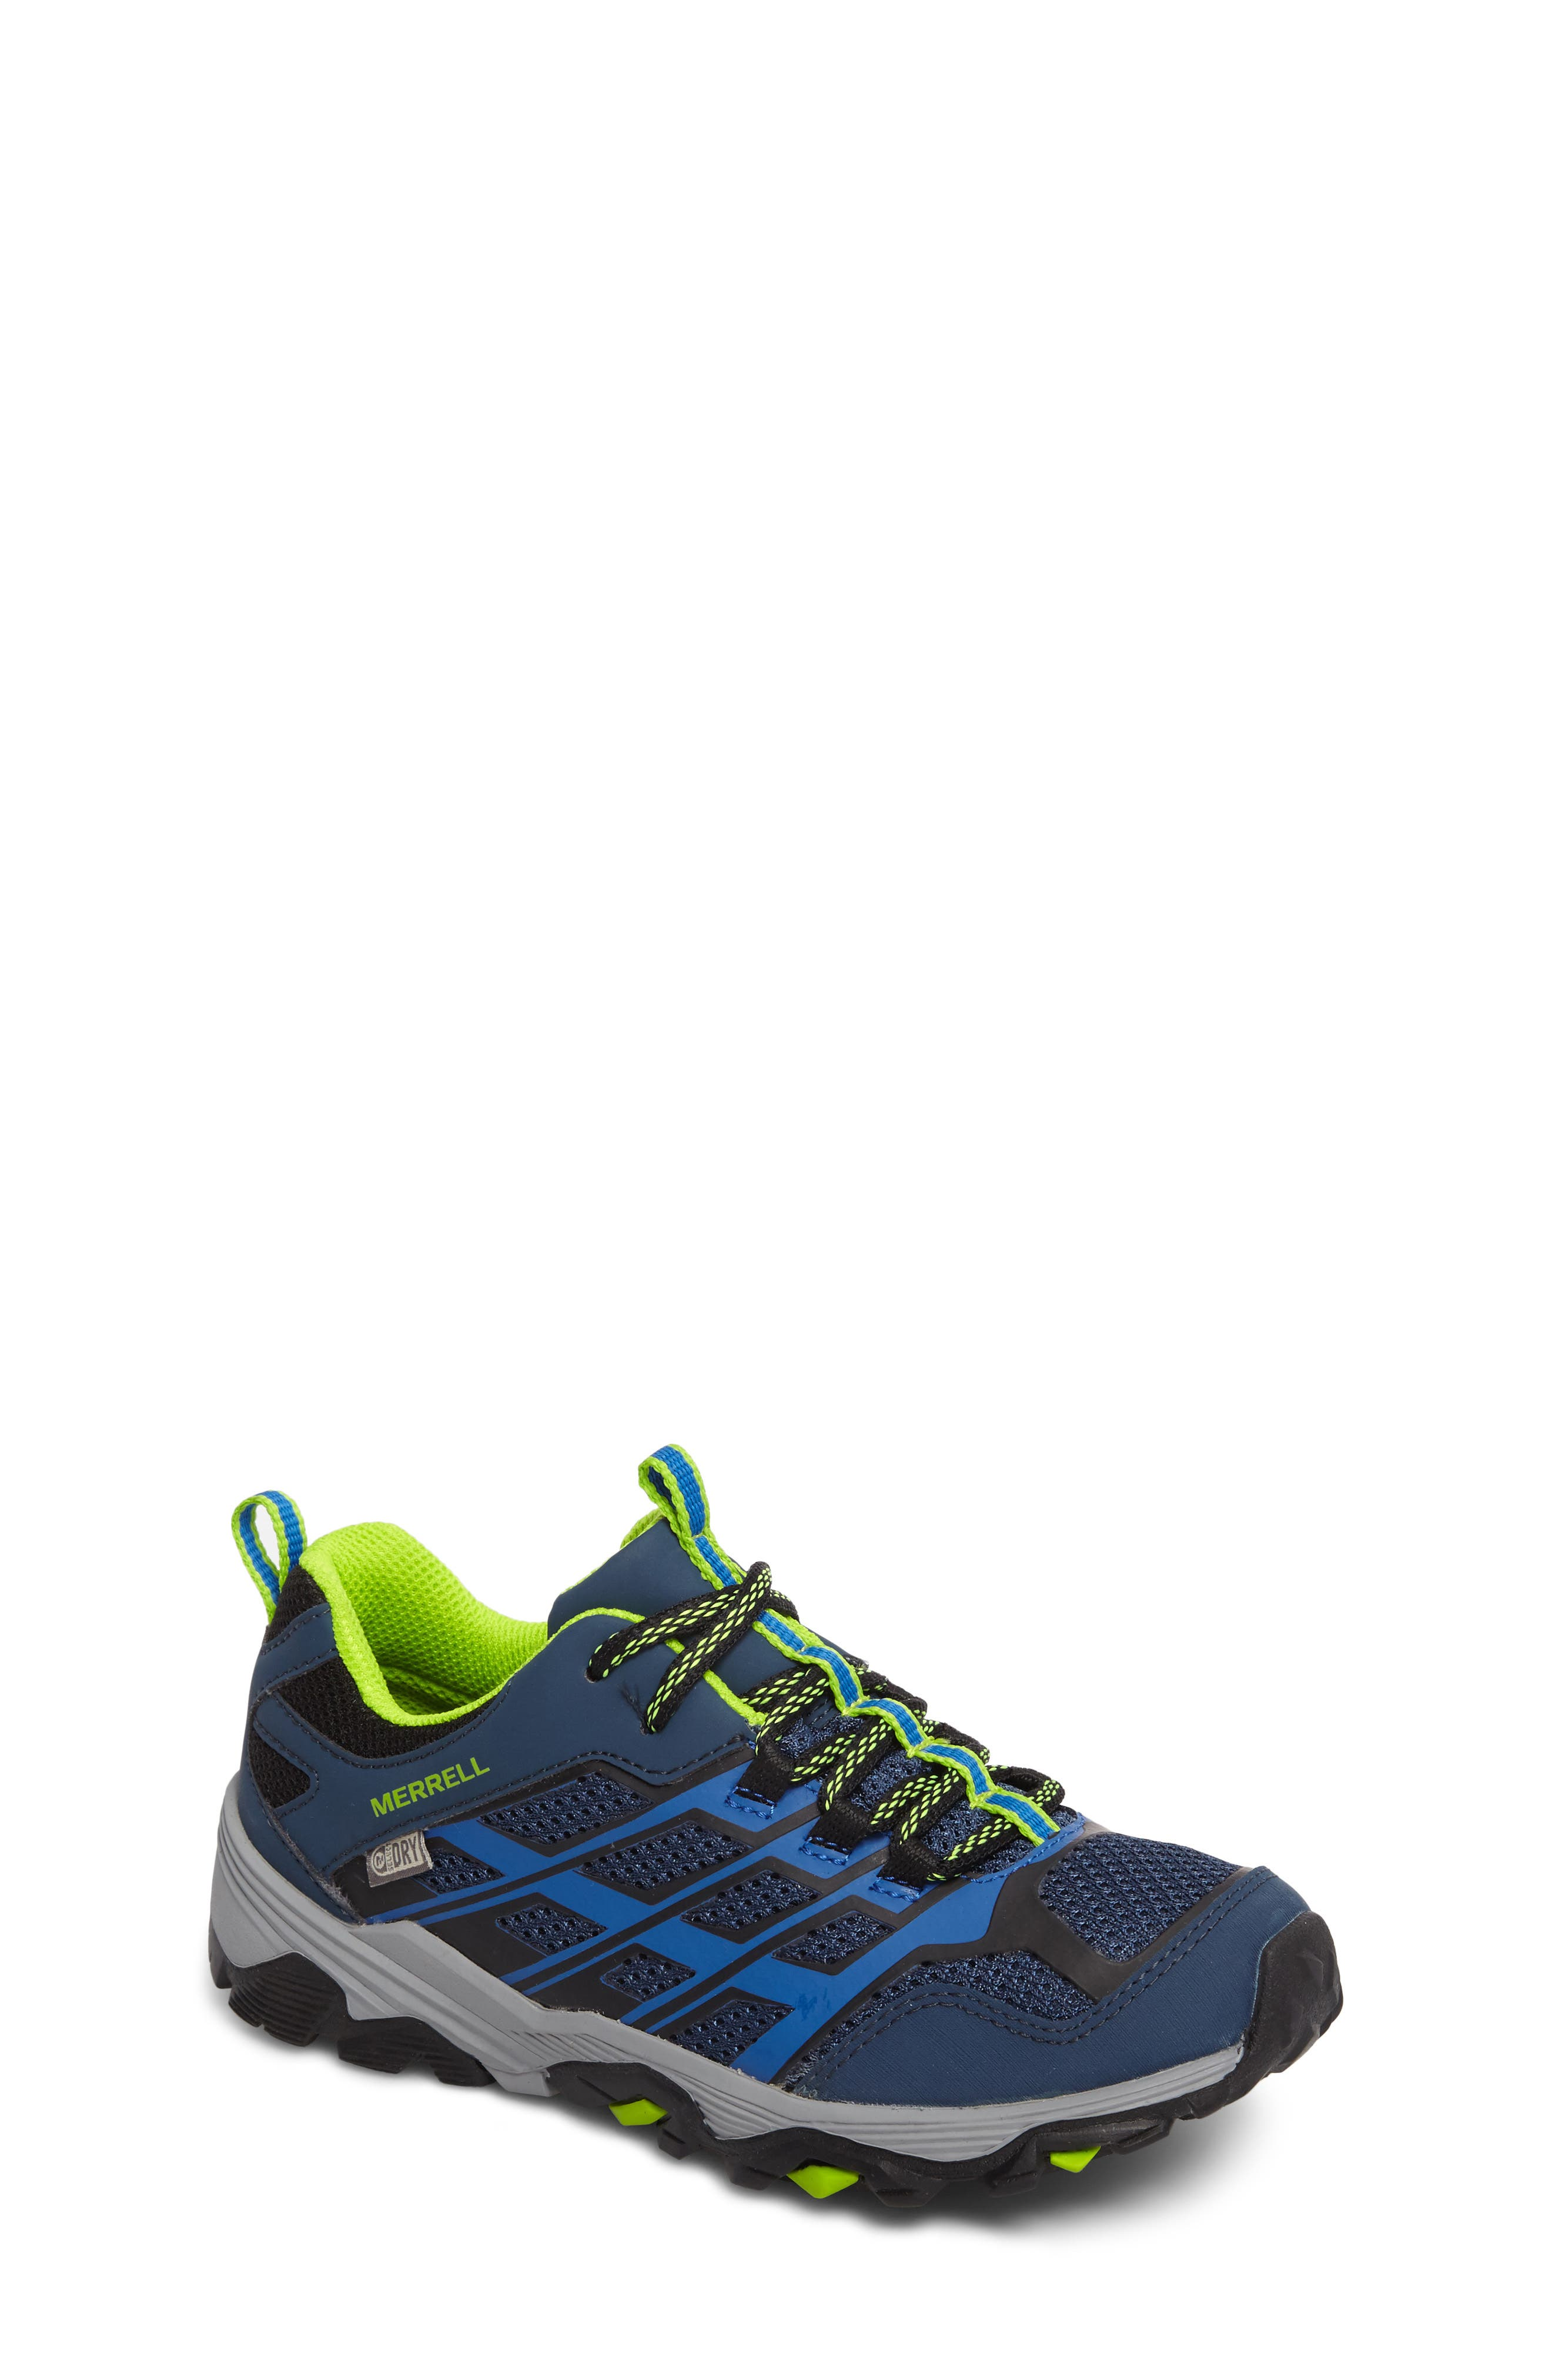 MERRELL Moab FST Polar Low Waterproof Sneaker, Main, color, NAVY/ BLUE